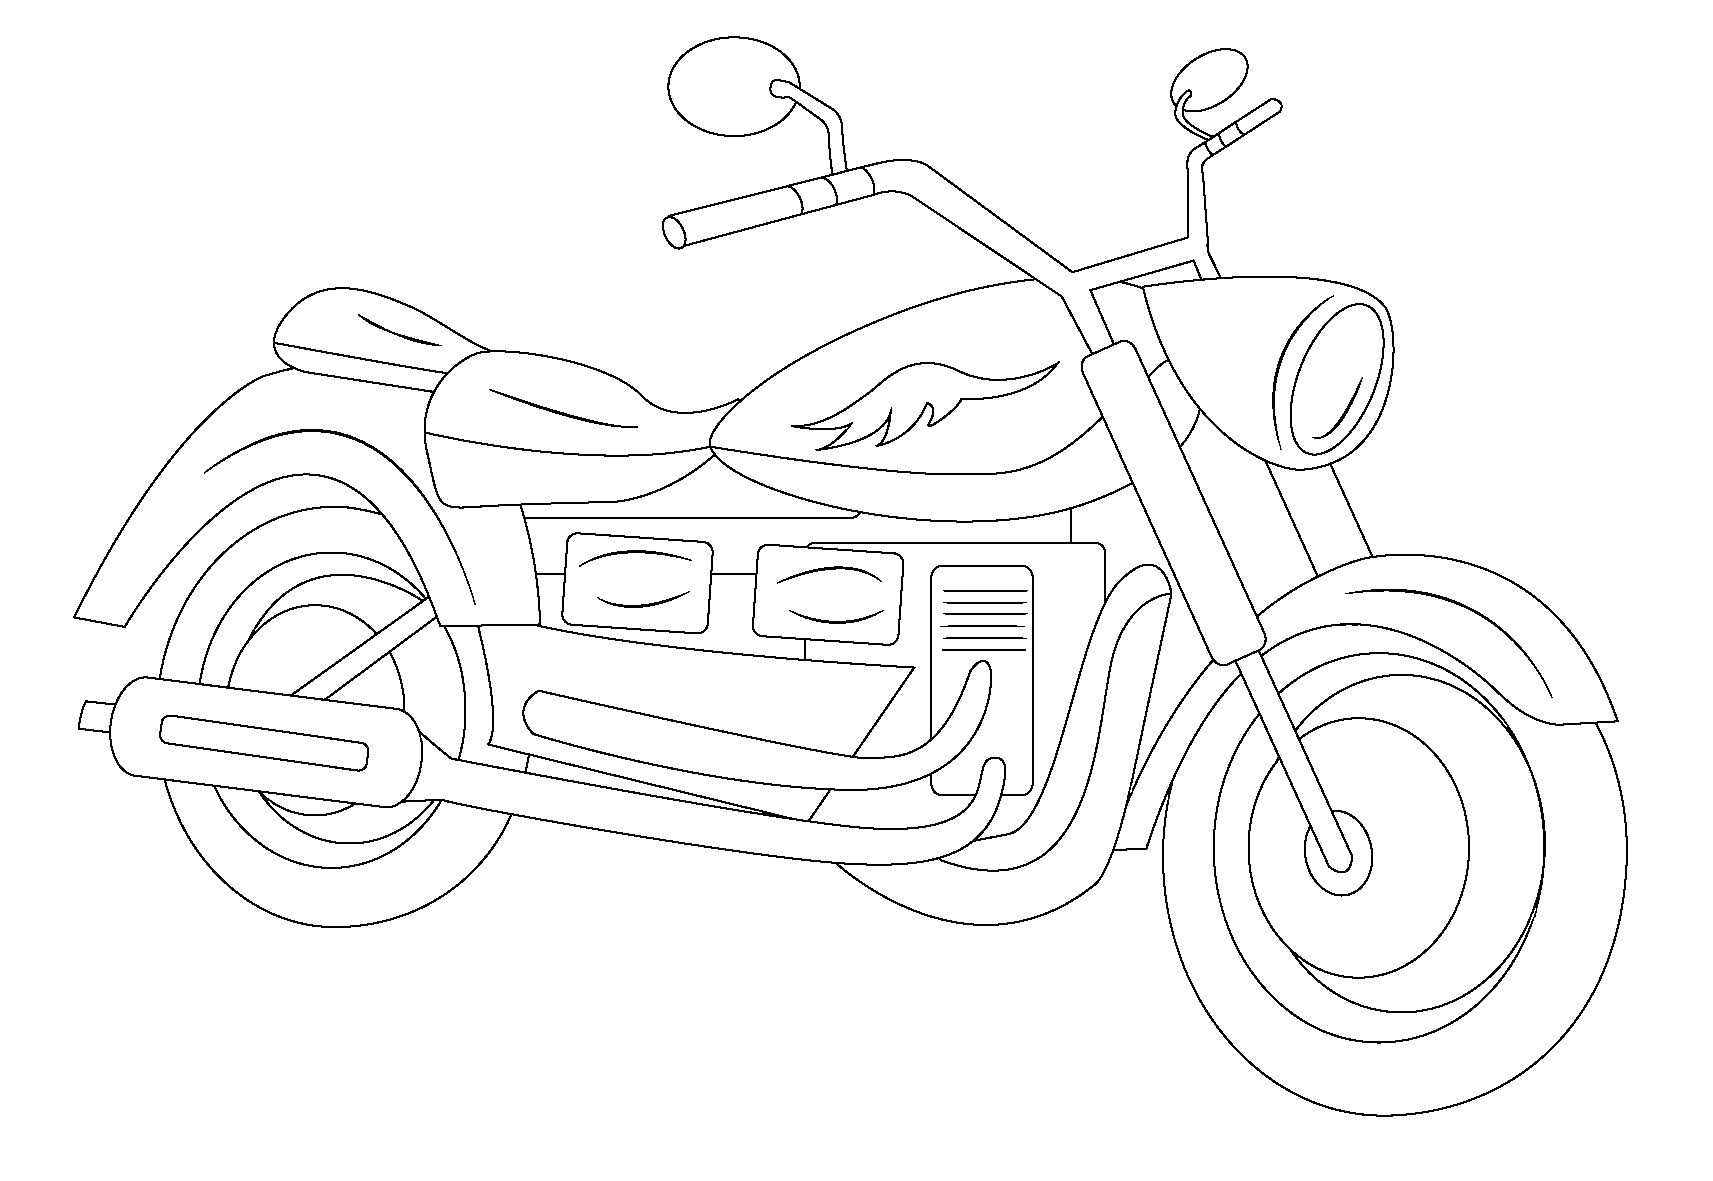 Free Printable Motorcycle Coloring Pages For Kids Coloring Pages For Boys Coloring Pages For Kids Mouse And The Motorcycle